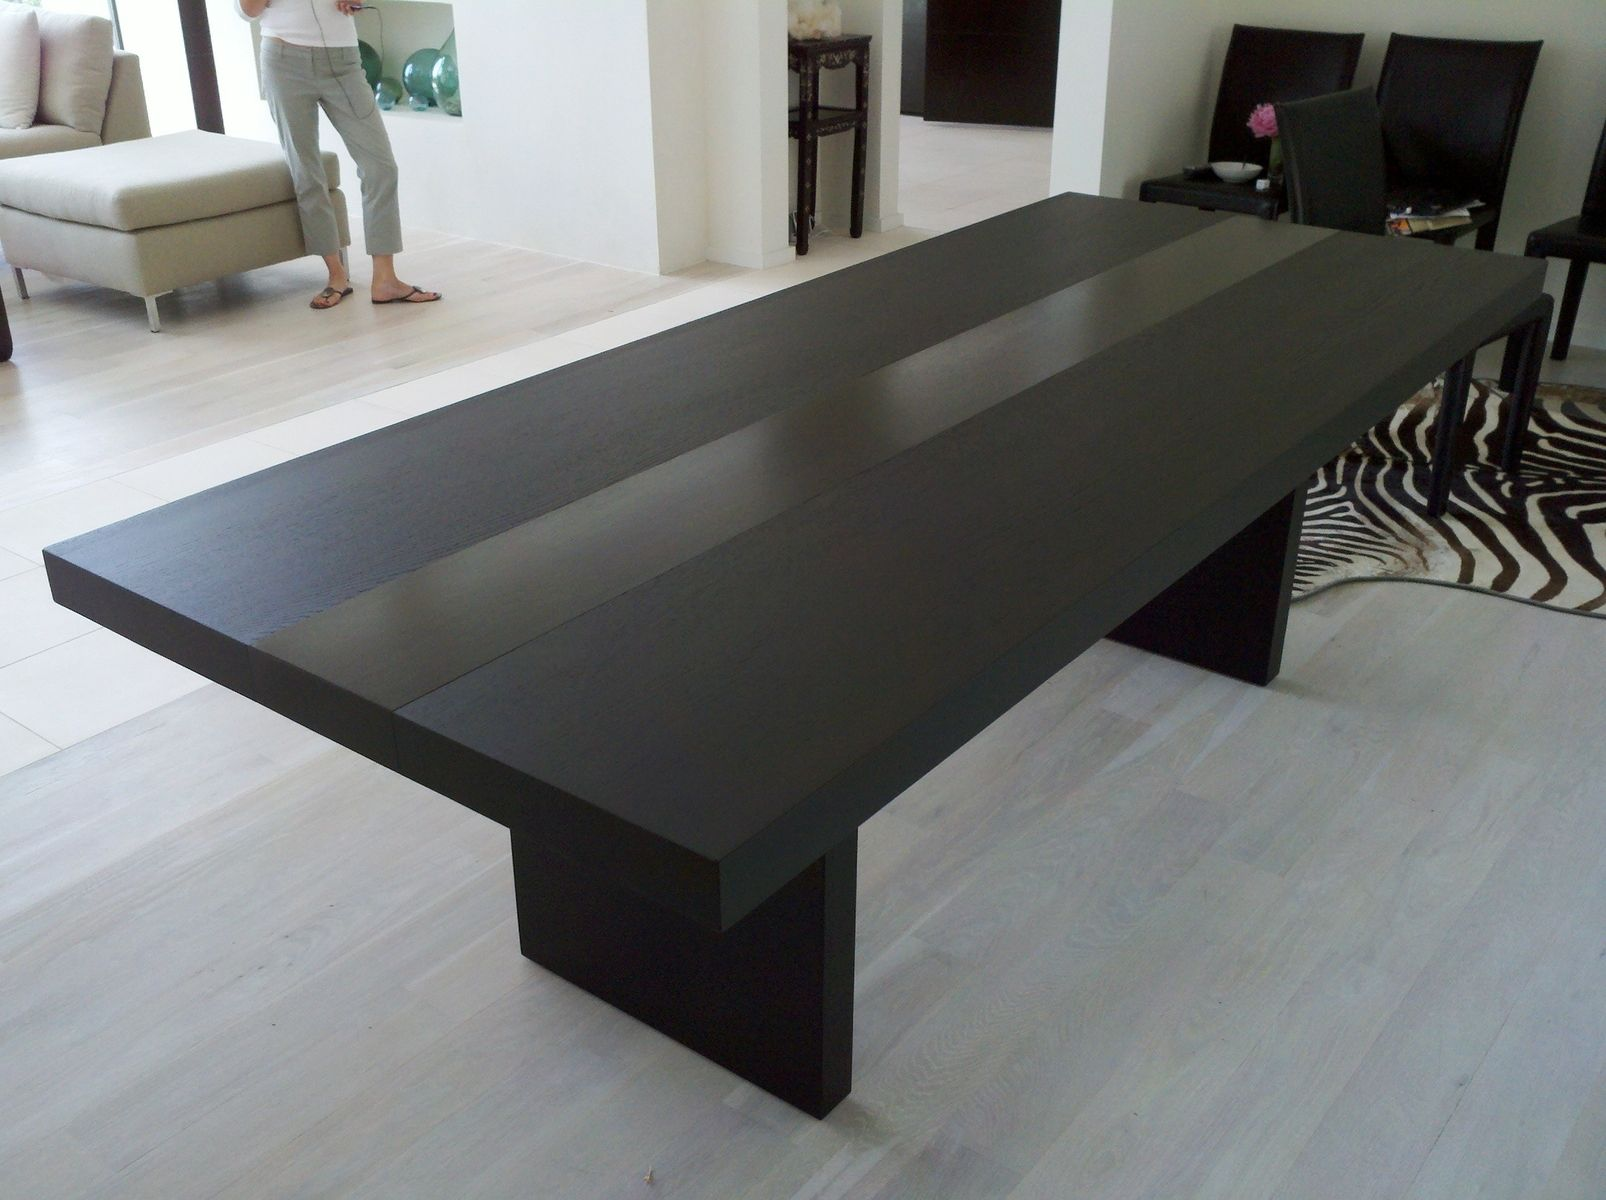 Entertain your guests with perfect dining table midcityeast - Black dining room tables ...